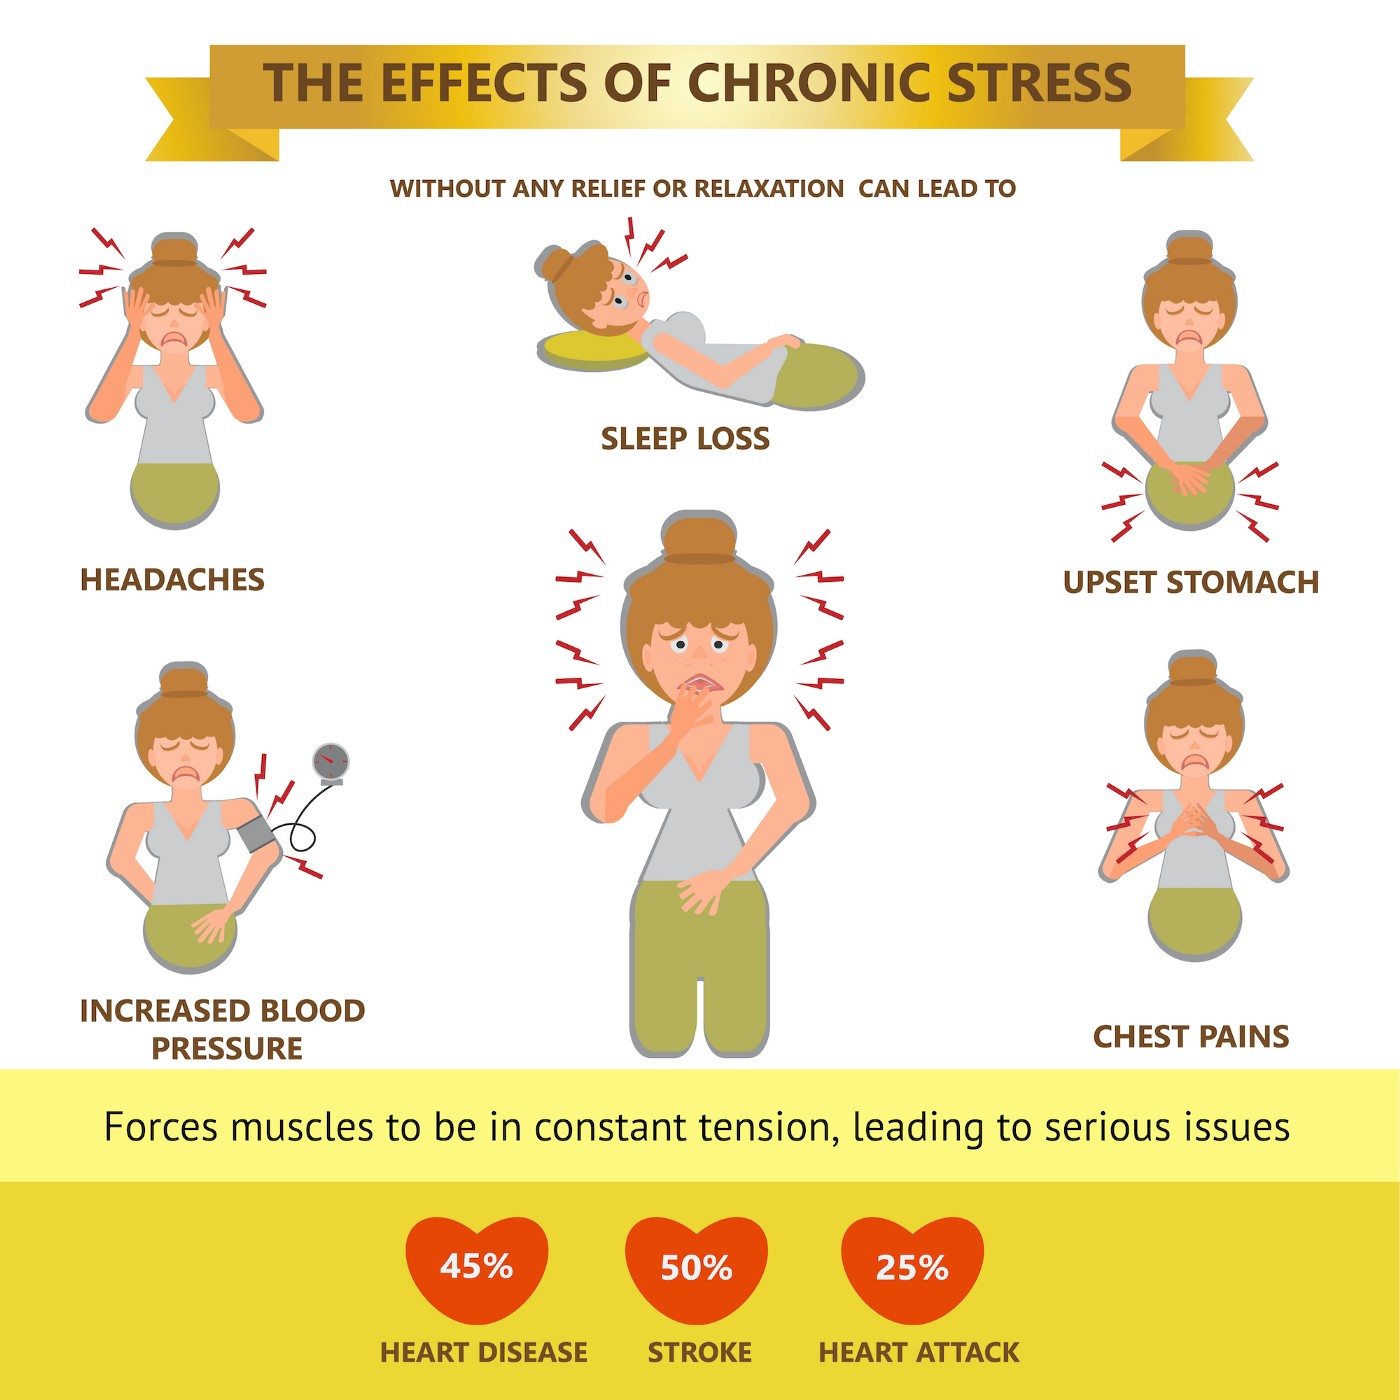 Effects of Chronic Stress Cause illness The headaches, abdominal pain, high blood pressure, angina, insomnia, can adversely affect the heart. Presented by vector illustration infographic flat cartoon